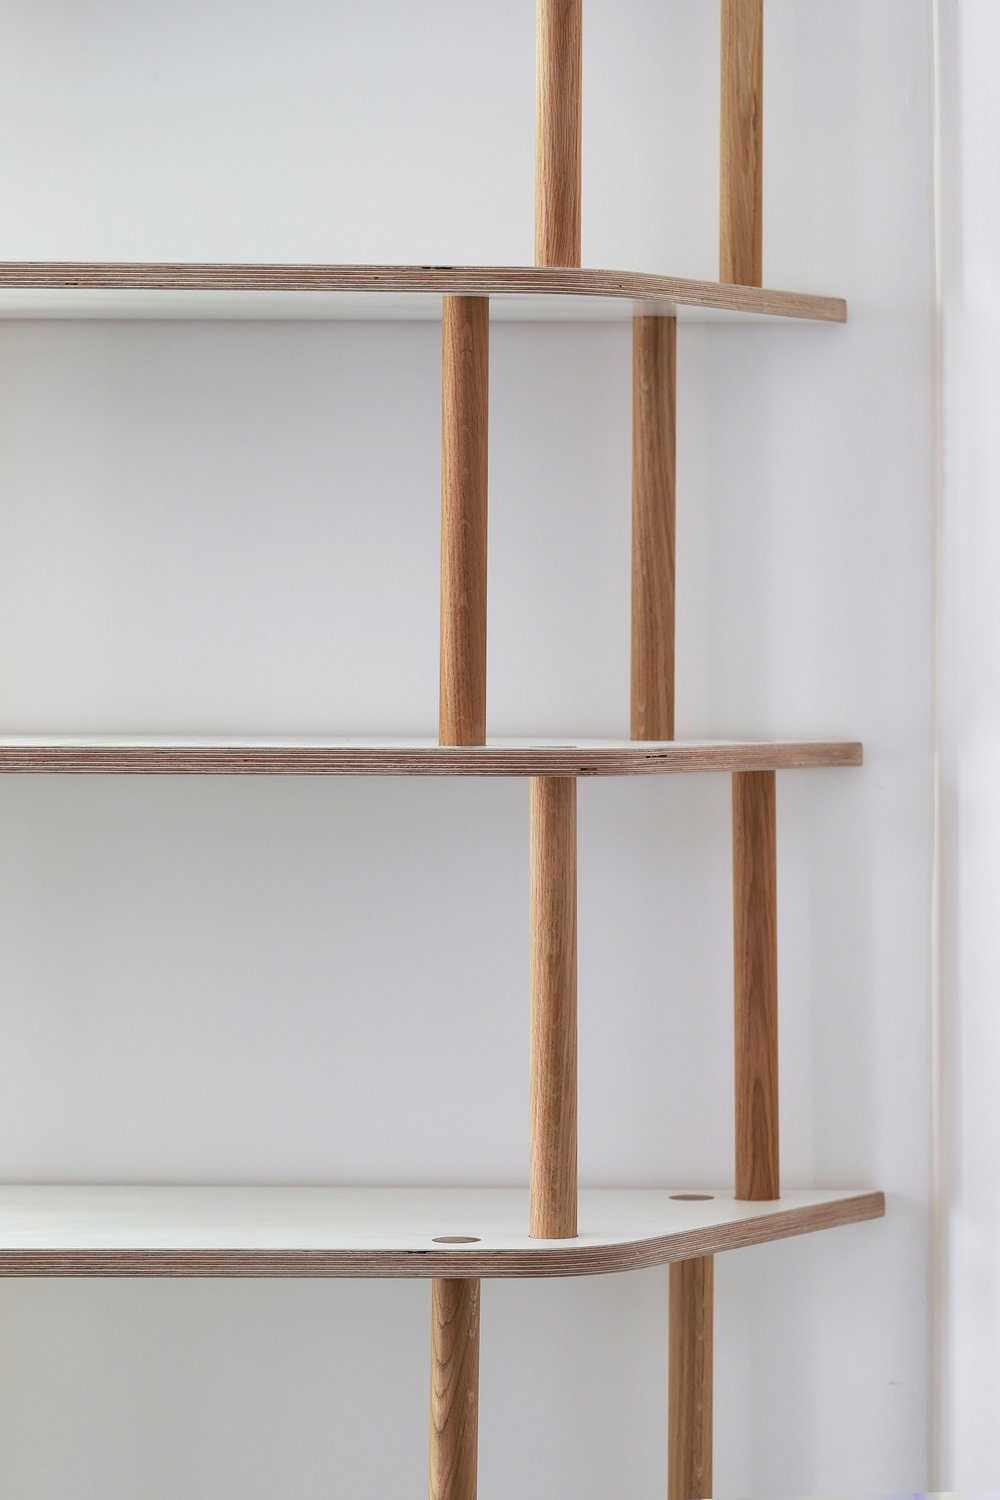 The edge of the open plan shelving is angled to mirror the angle of the room. Solid oak dowel legs, offset to create a design focus, support the shelving.